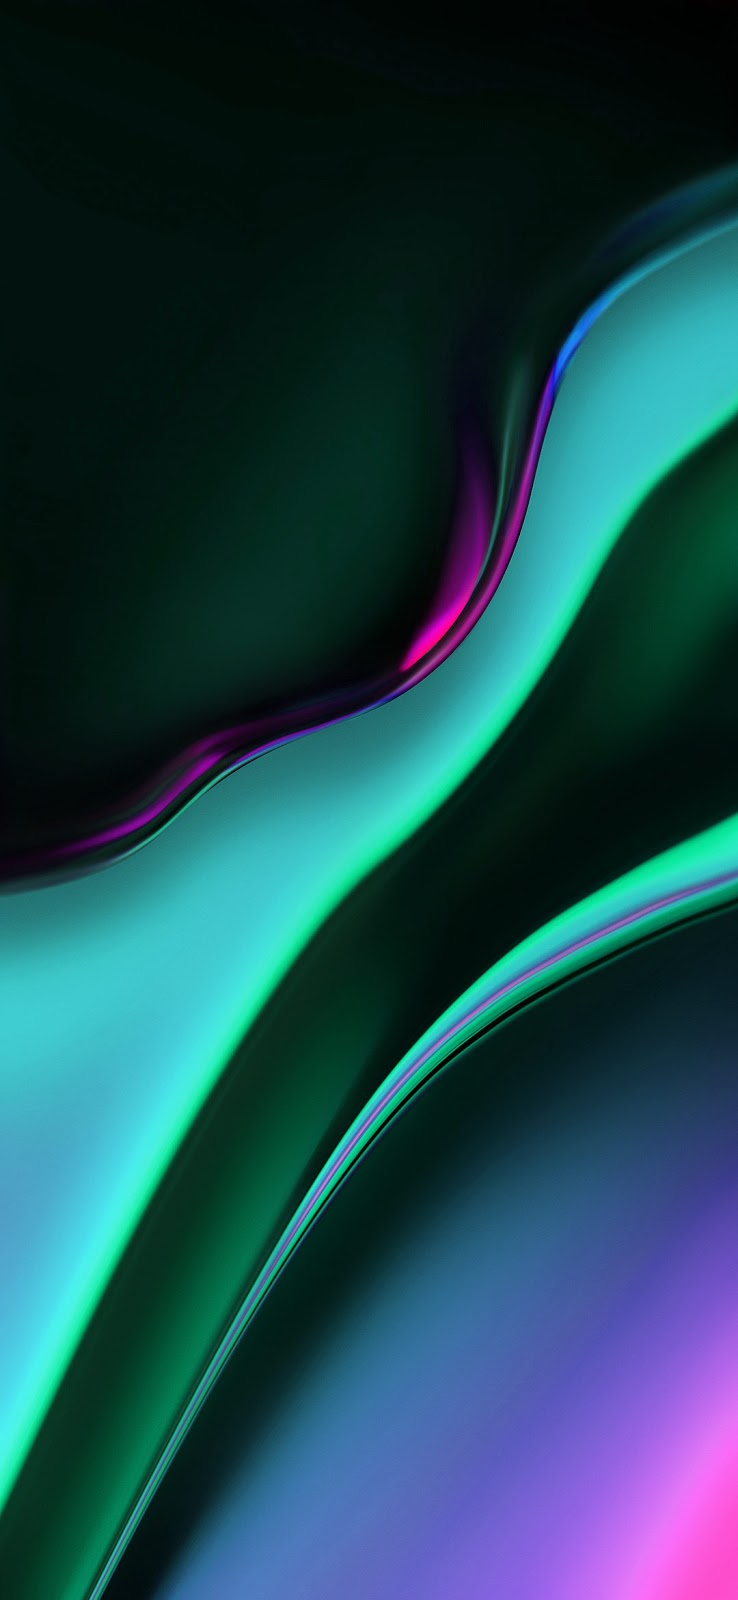 Download OnePlus 6 and OnePlus 6T Wallpaper here - Androidleo